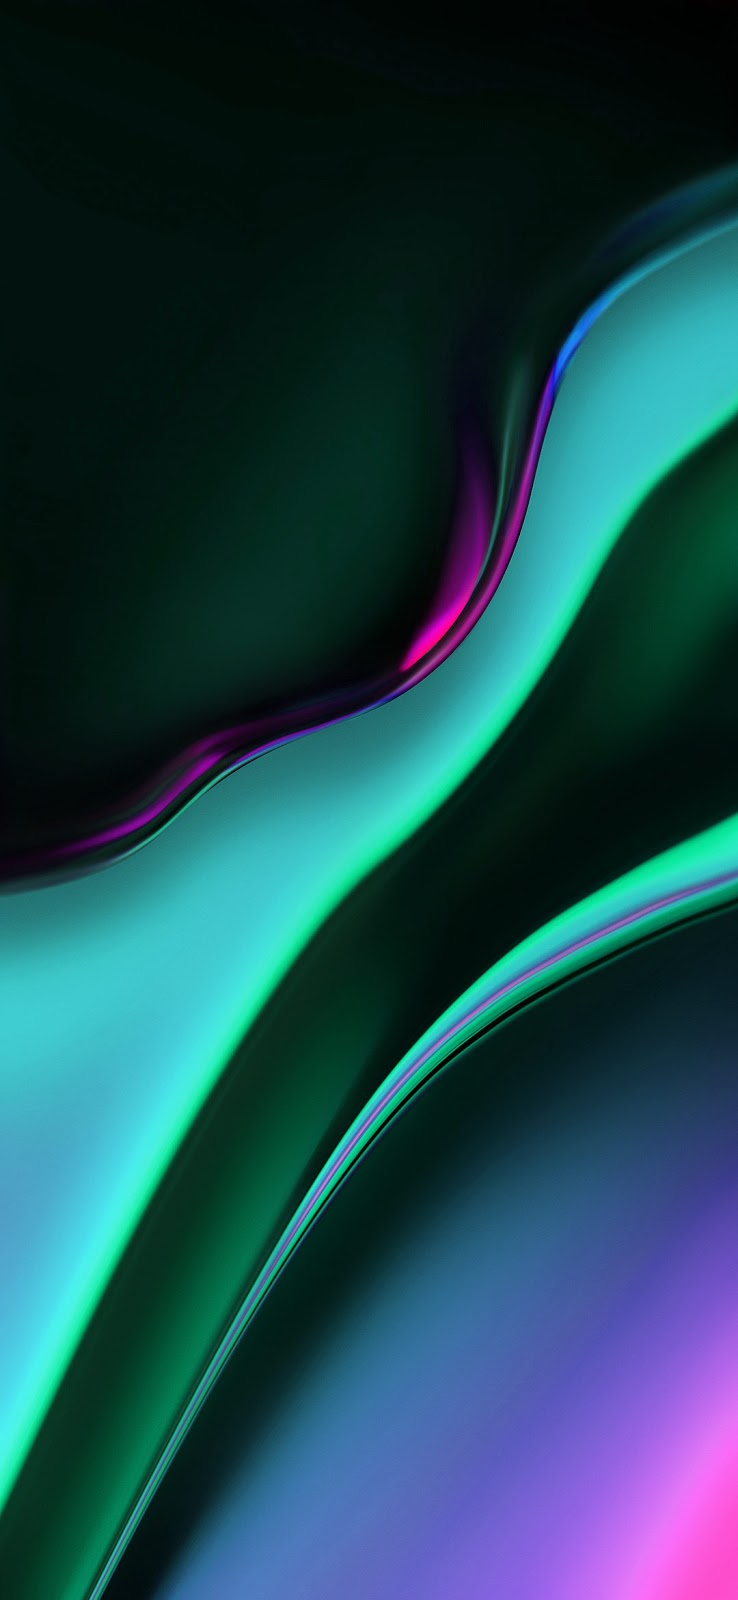 Download OnePlus 6 and OnePlus 6T Wallpaper here - Androidleo